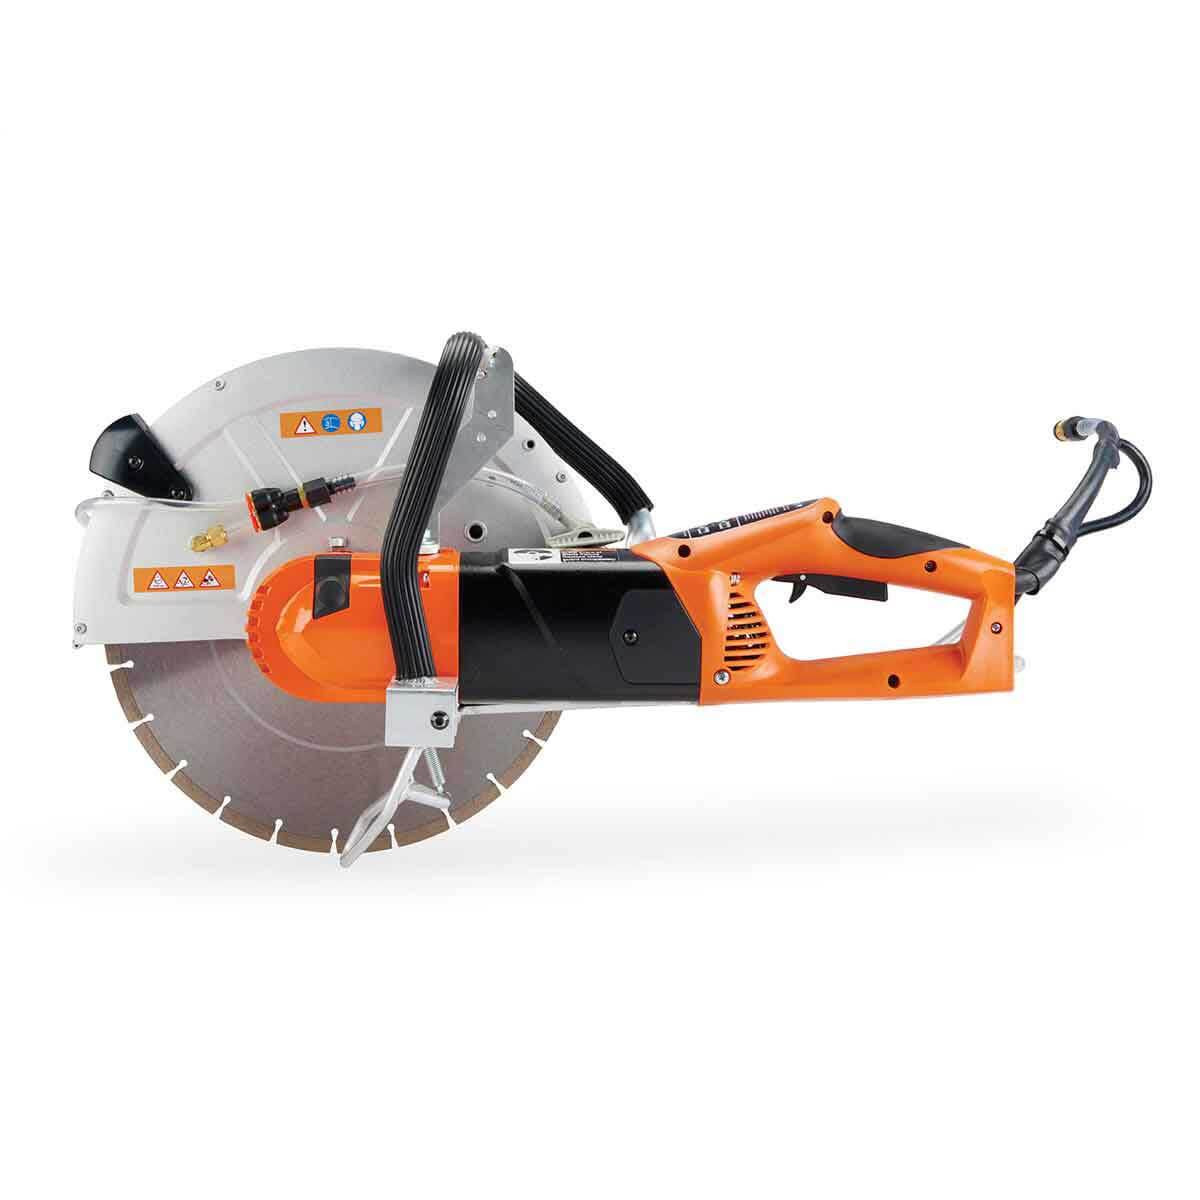 CE414-350 Electric High Speed saw